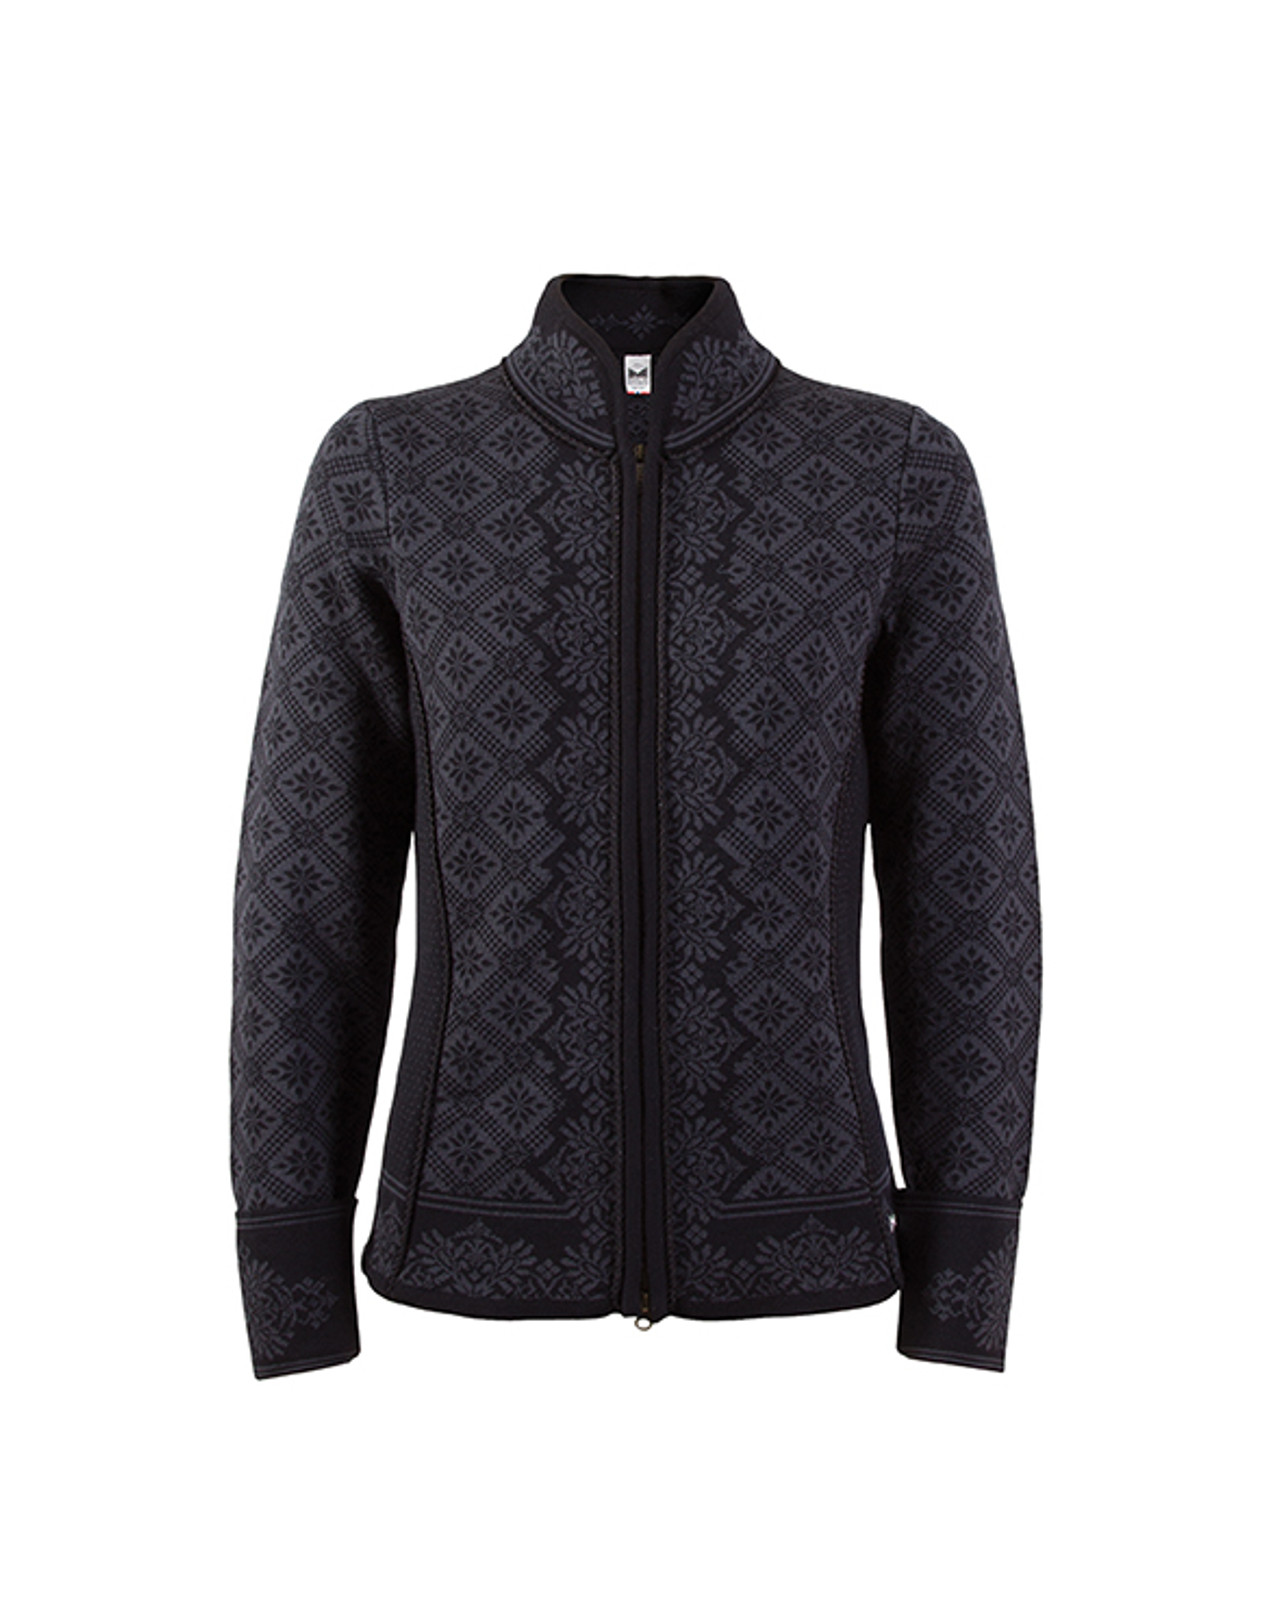 Dale of Norway, Christiania cardigan, ladies, in Black/Dark Grey, 81951-K, on sale at The Nordic Shop